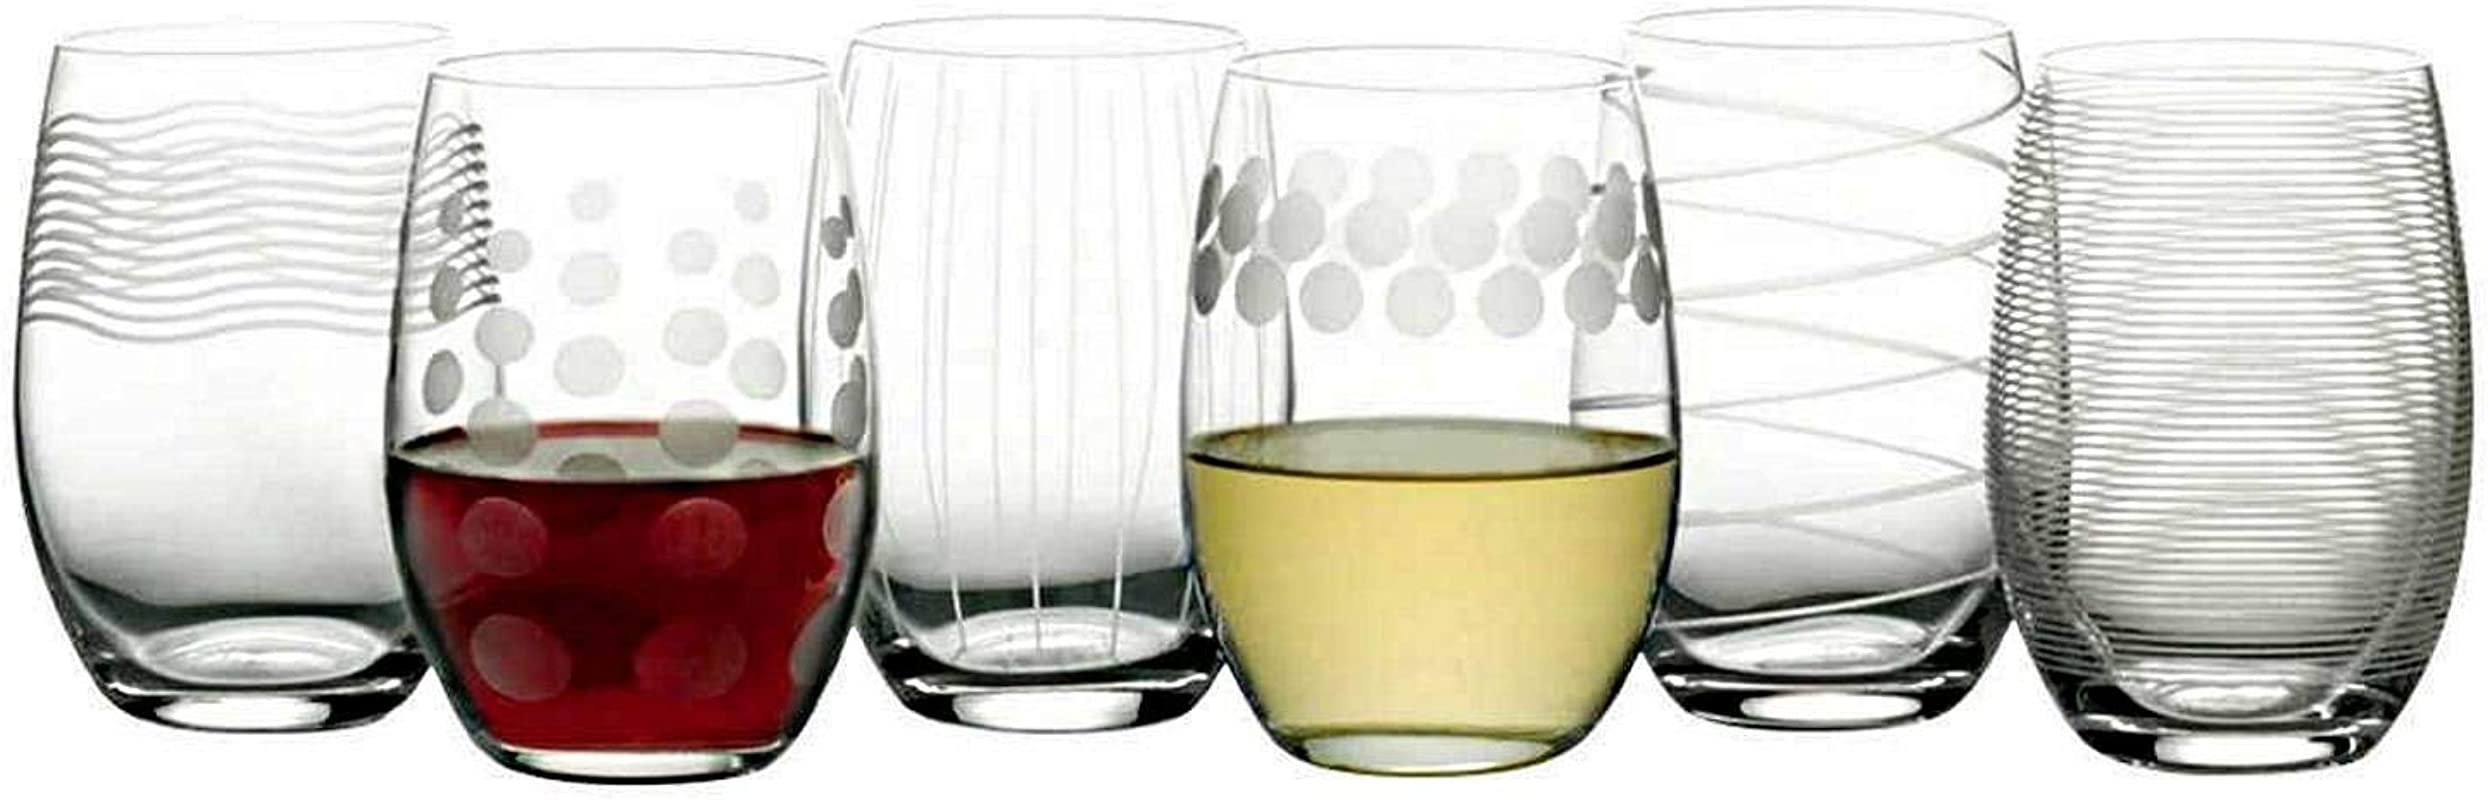 Mikasa Cheers Stemless Etched Wine Glasses Fine European Lead Free Crystal 17 Ounces For Red Or White Wine Set Of 6